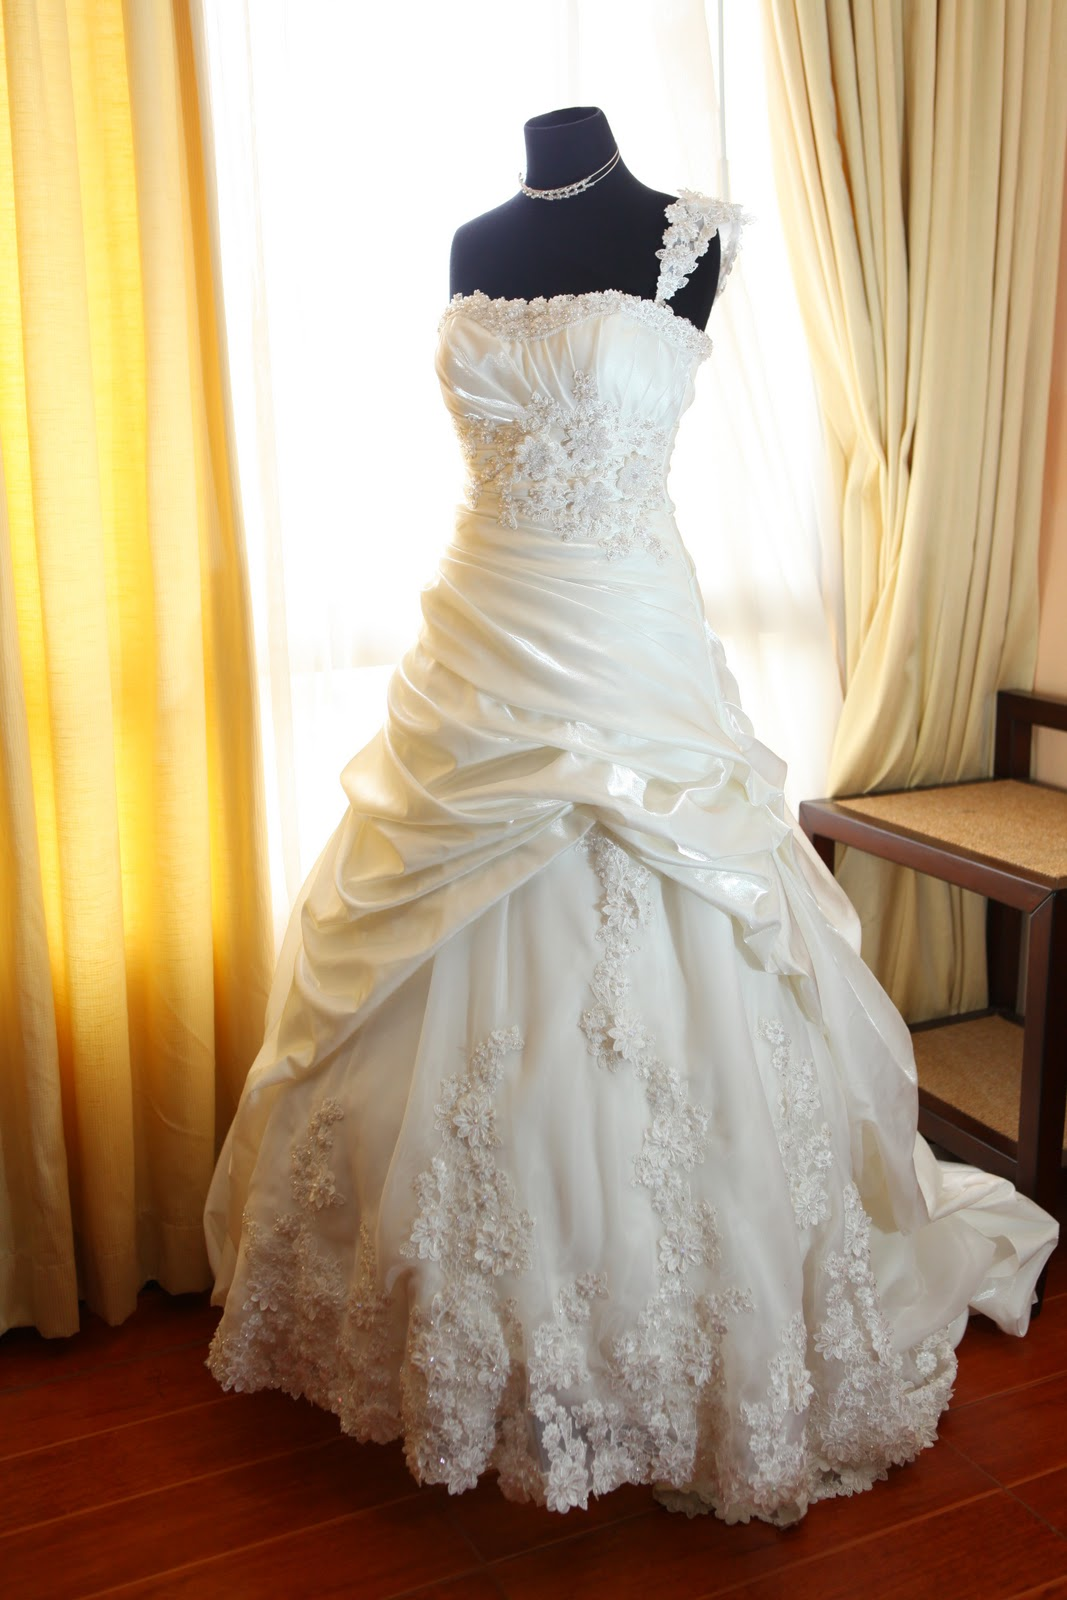 Dorable wedding gowns for rent festooning princess for Wedding dresses for rent in atlanta ga